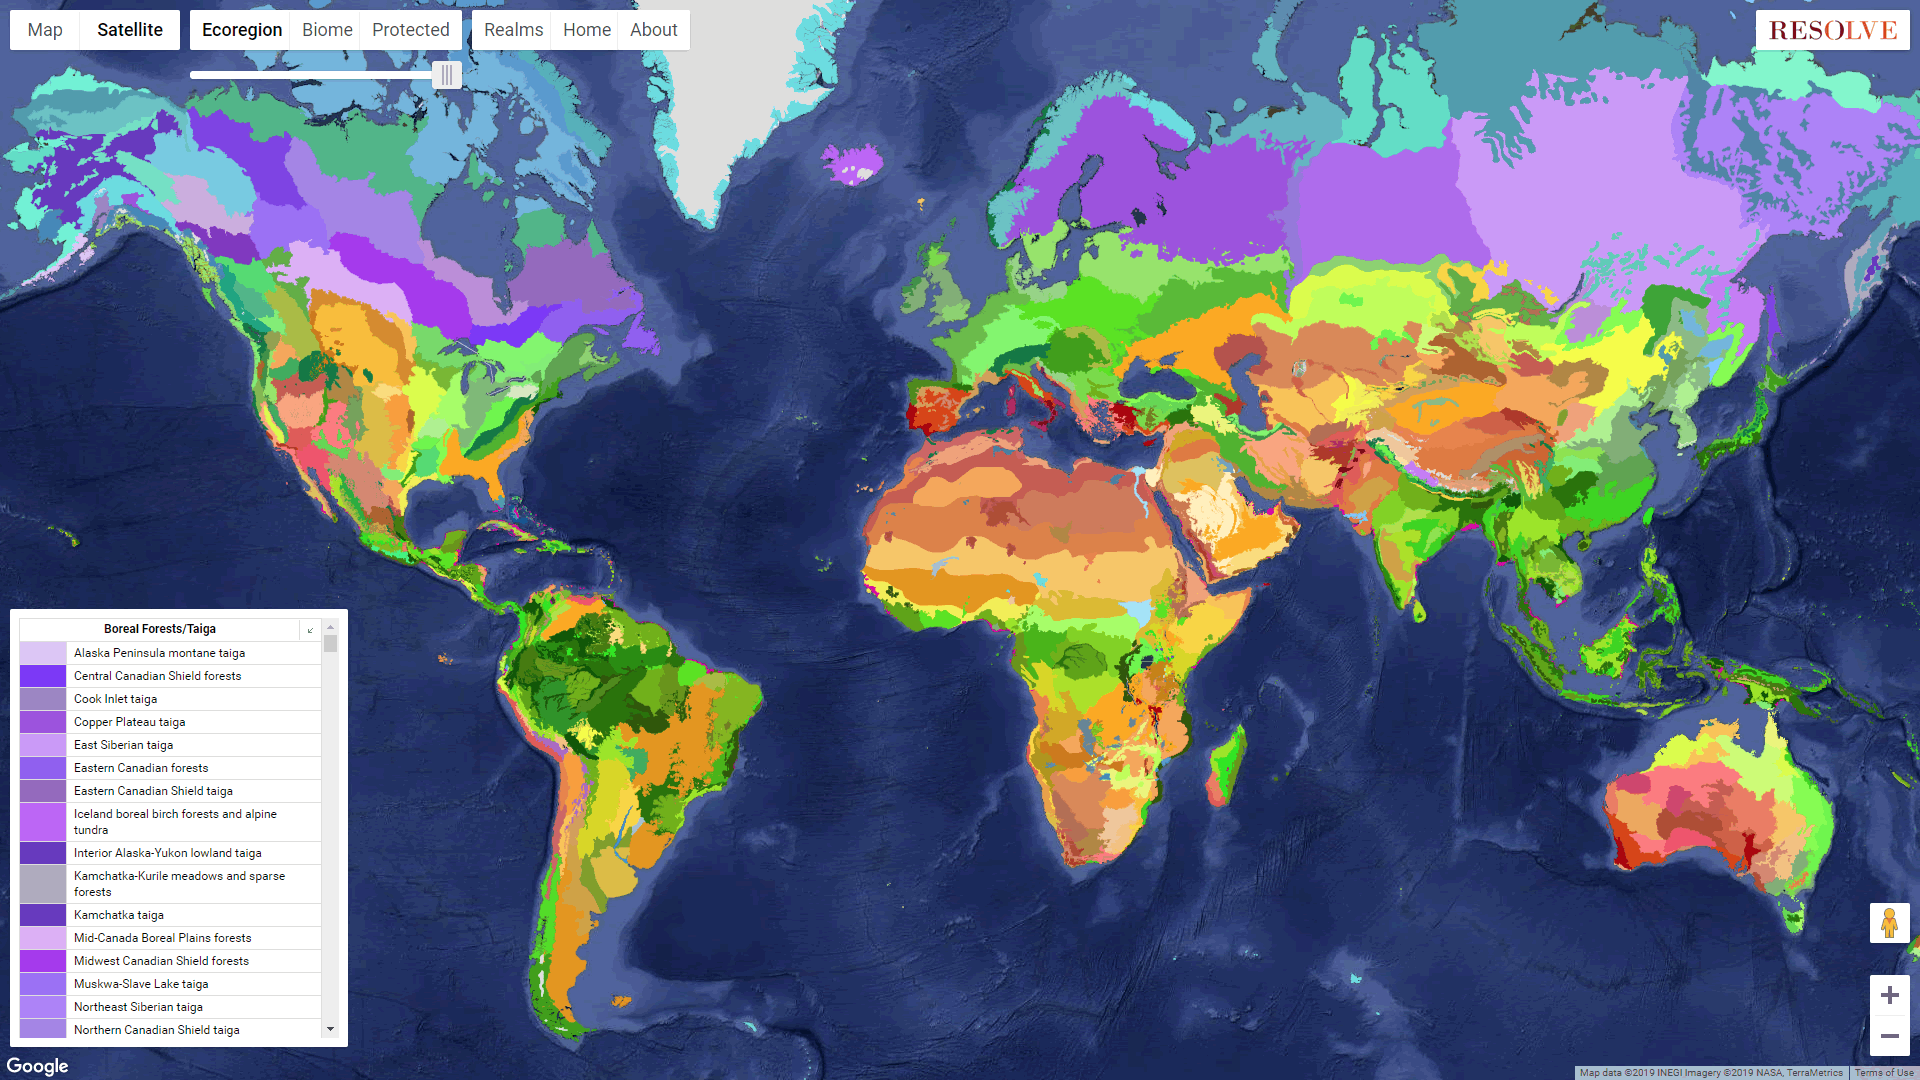 Click to be swept away into the wondrous world of open ecoregion data...